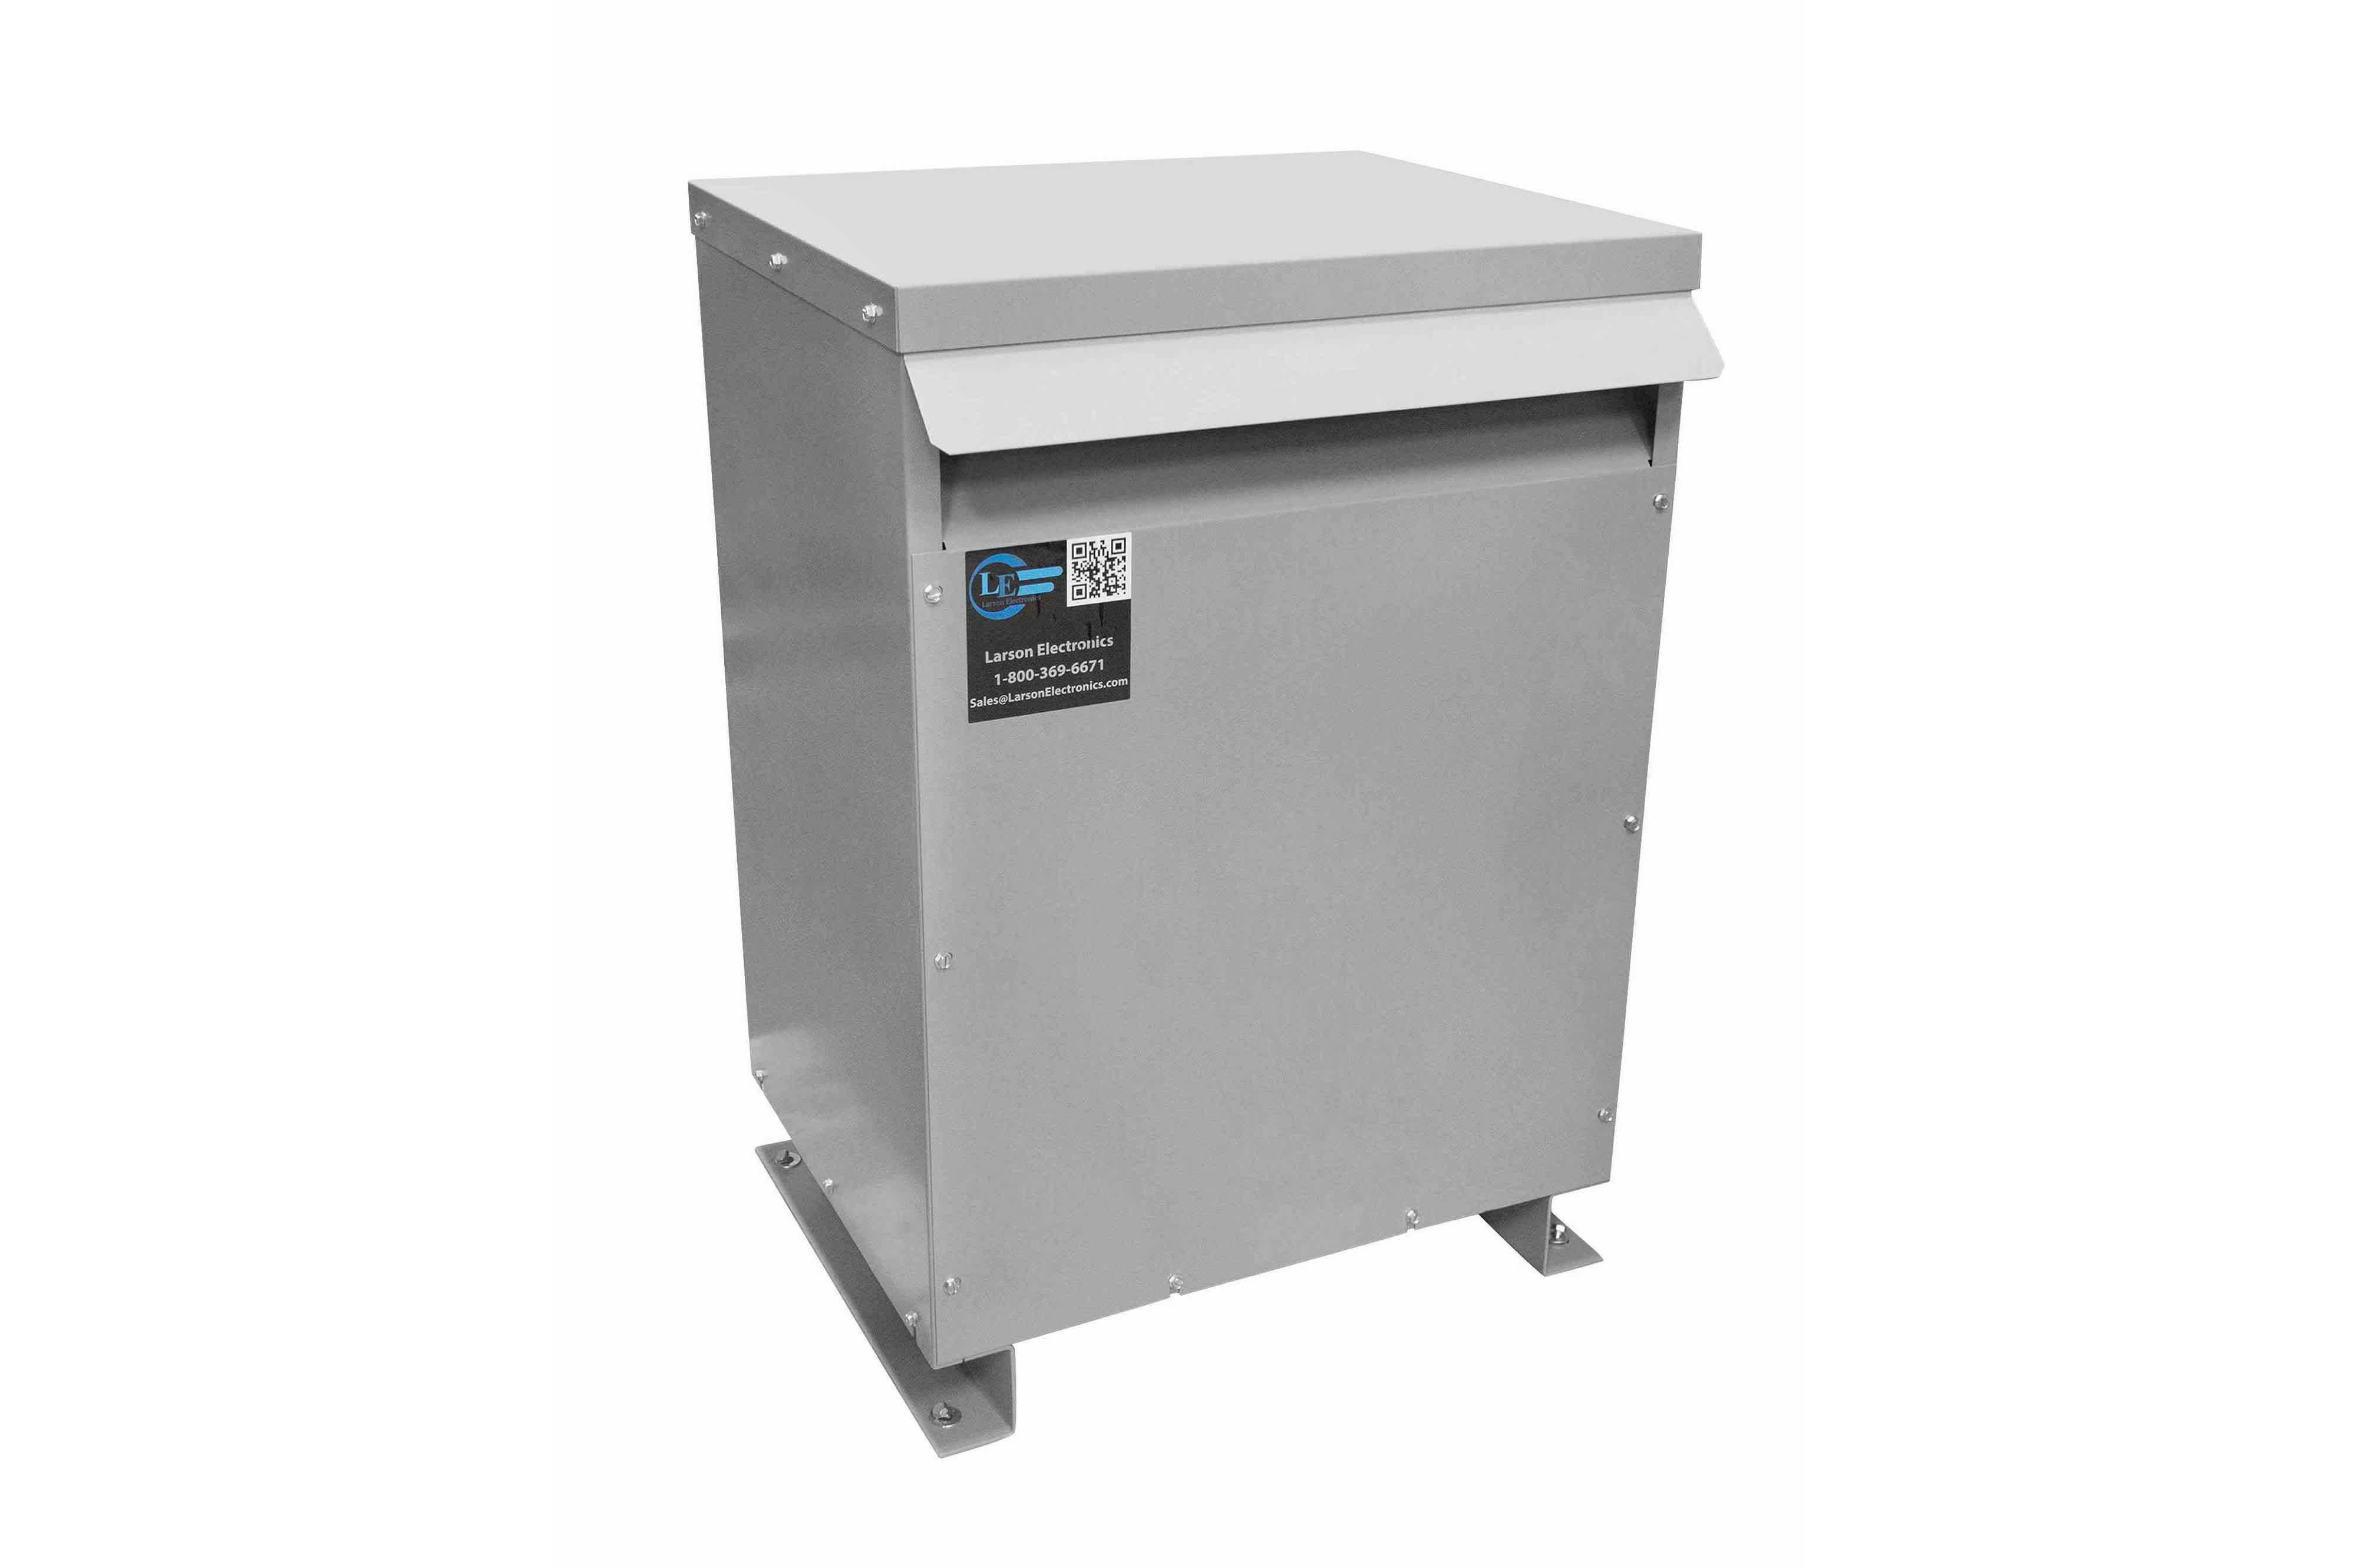 167 kVA 3PH Isolation Transformer, 480V Wye Primary, 208Y/120 Wye-N Secondary, N3R, Ventilated, 60 Hz